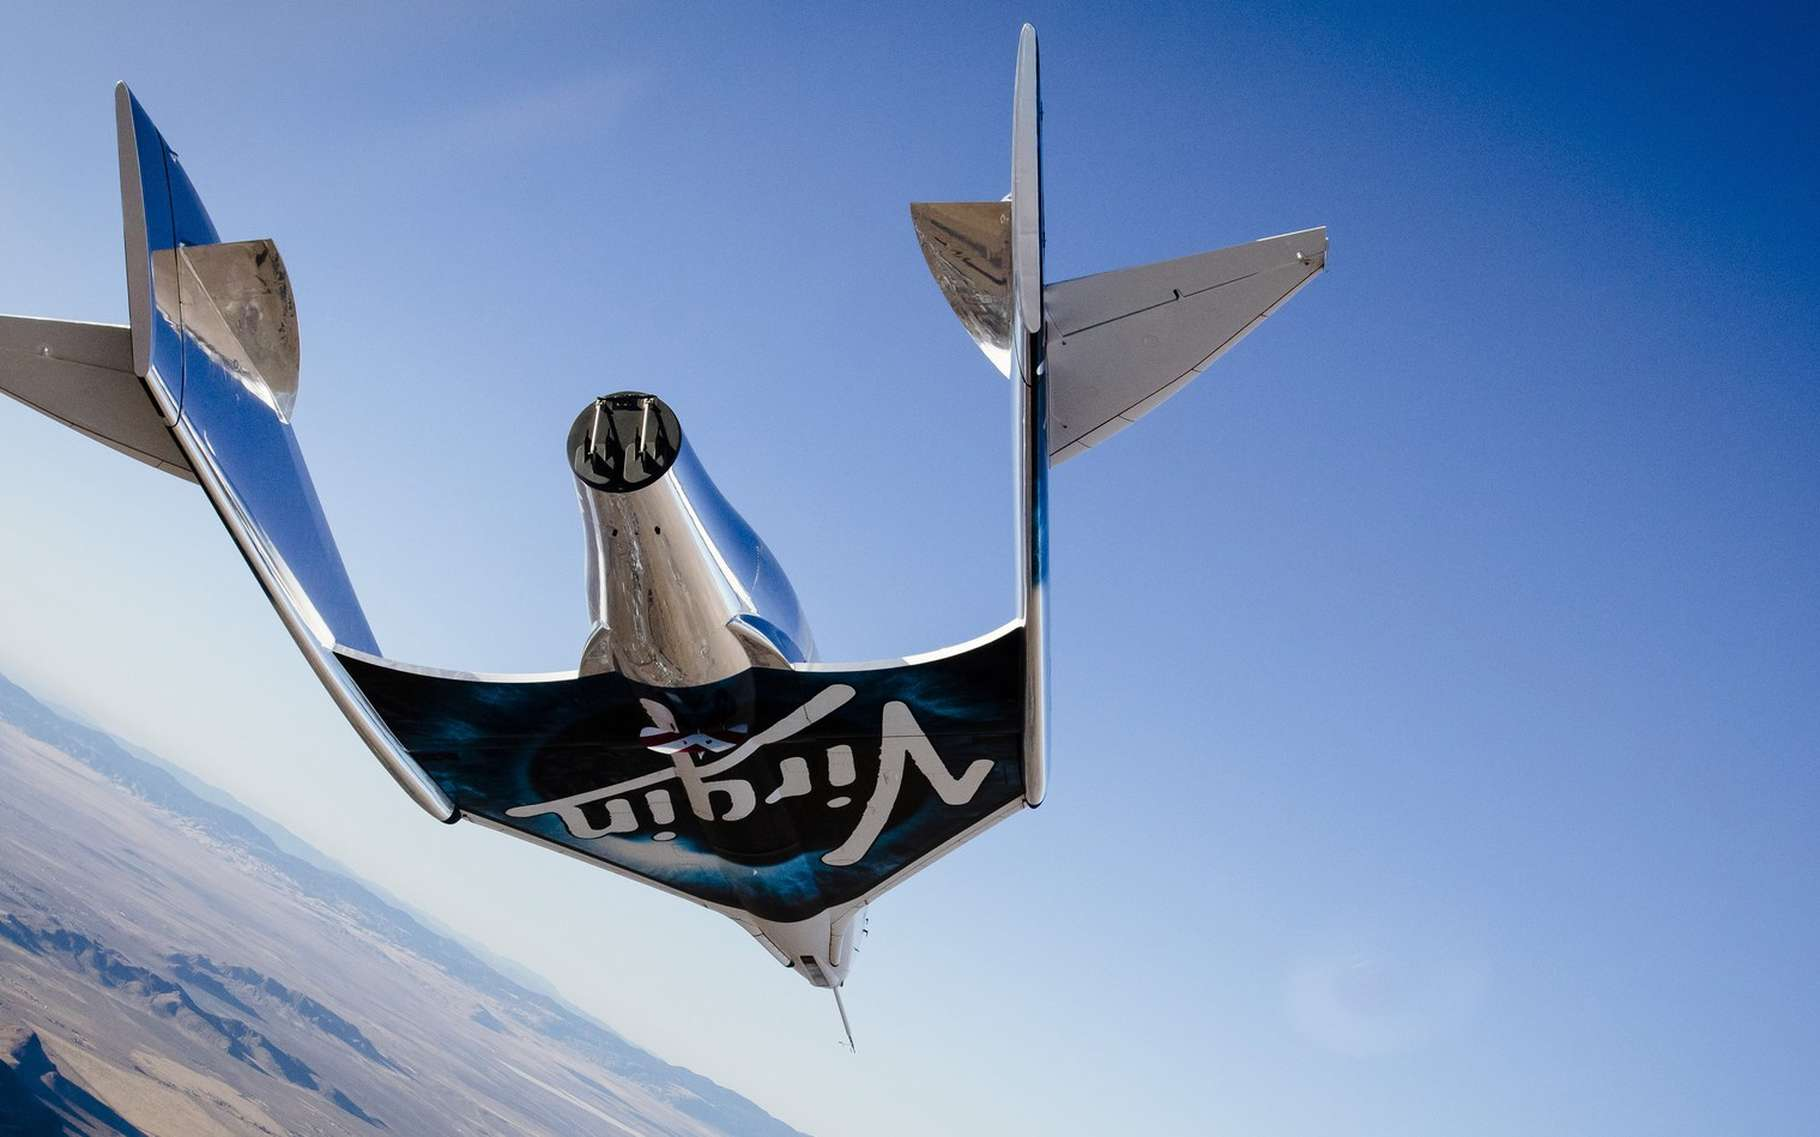 L'avion Orbital Unity de Virgin Galactic est une évolution du SpaceShipTwo créée suite au crash fatal d'octobre 2014. © Virgin Galactic